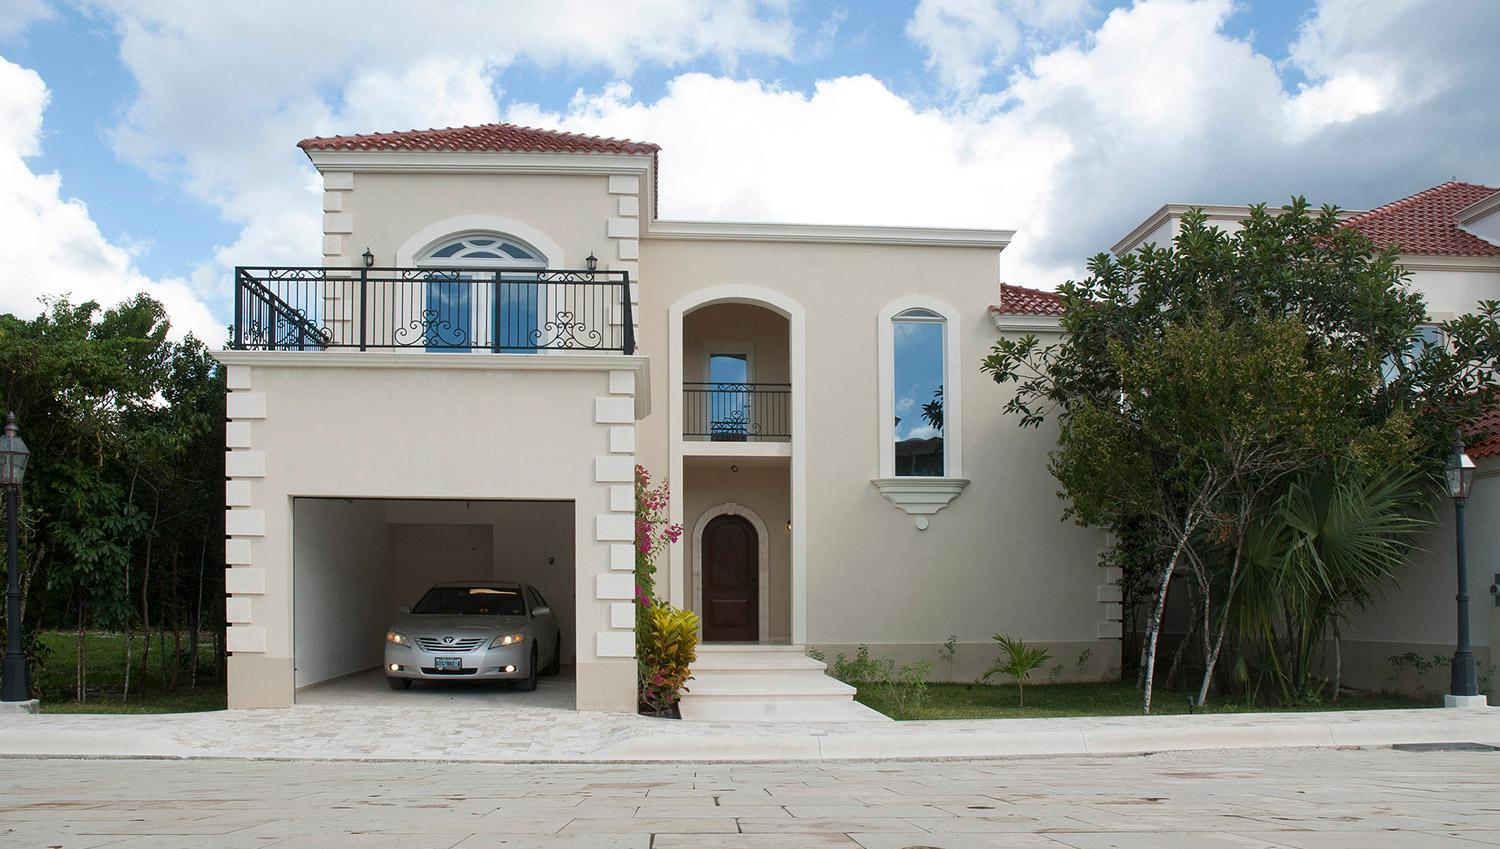 Luxurious residence in an exclusive residential area, 3 bedrooms